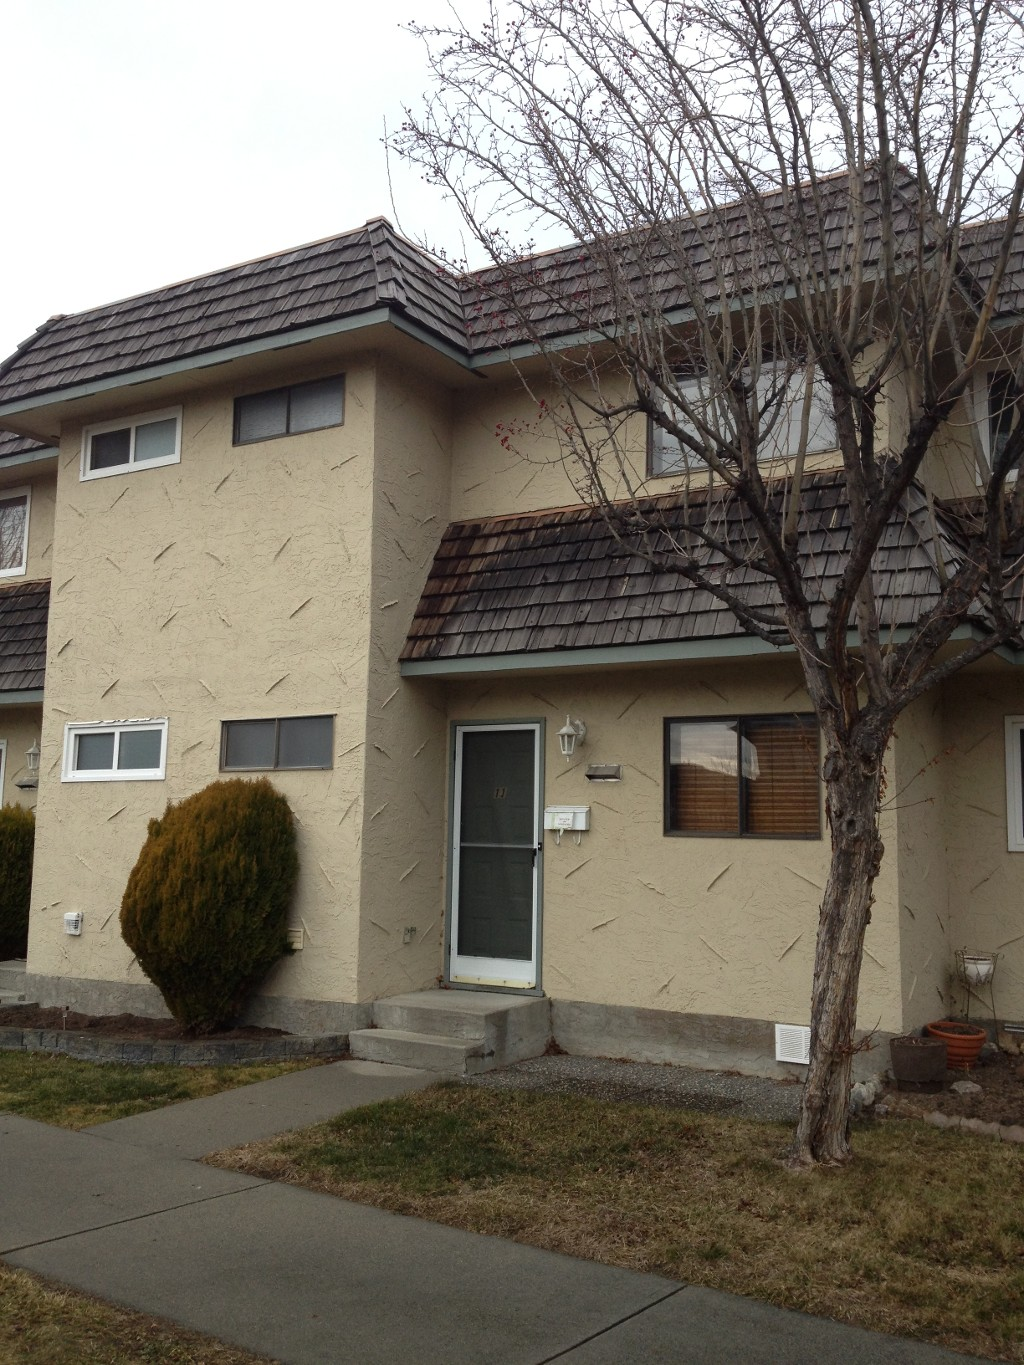 Main Photo: 11 45 W Green Avenue in Penticton: Main South Residential Attached for sale : MLS(r) # 141418